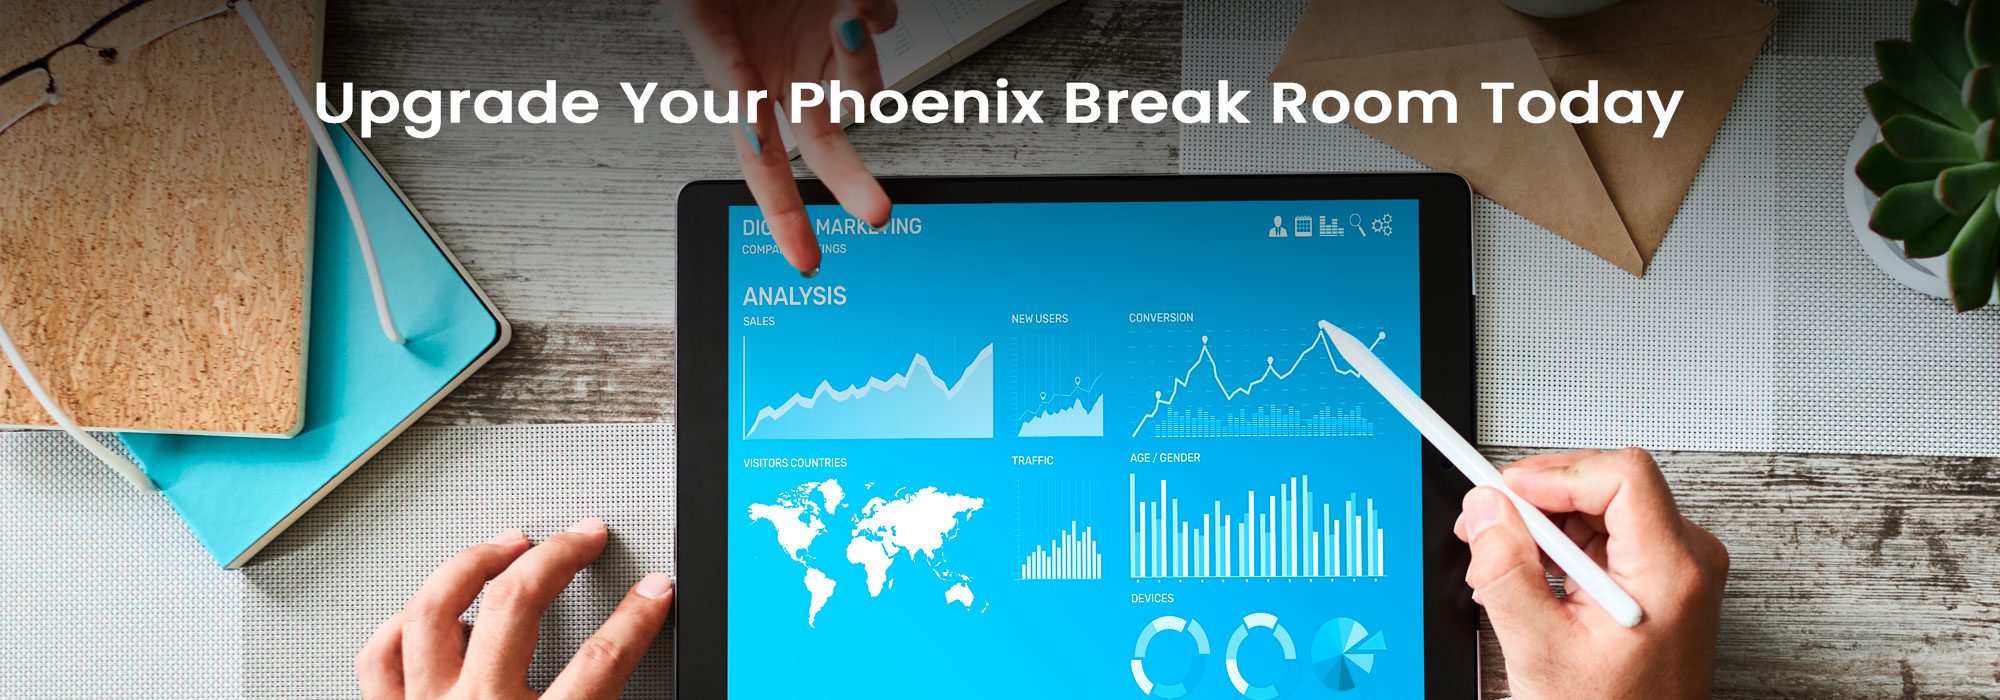 Smart Inventory for Phoenix Break Rooms